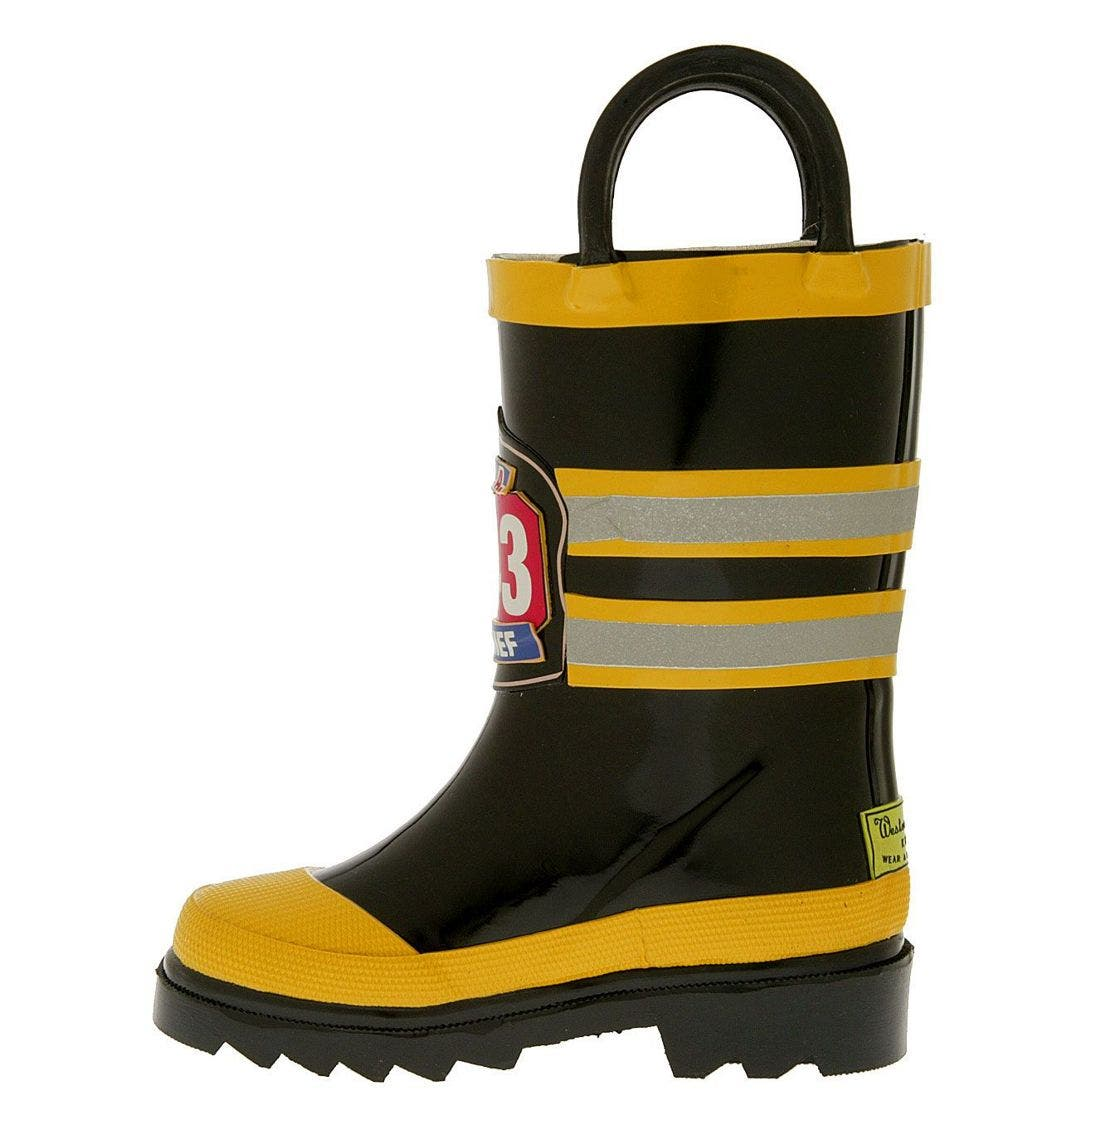 Alternate Image 2  - Western Chief 'Fireman' Rain Boot (Walker, Toddler, Little Kid & Big Kid)